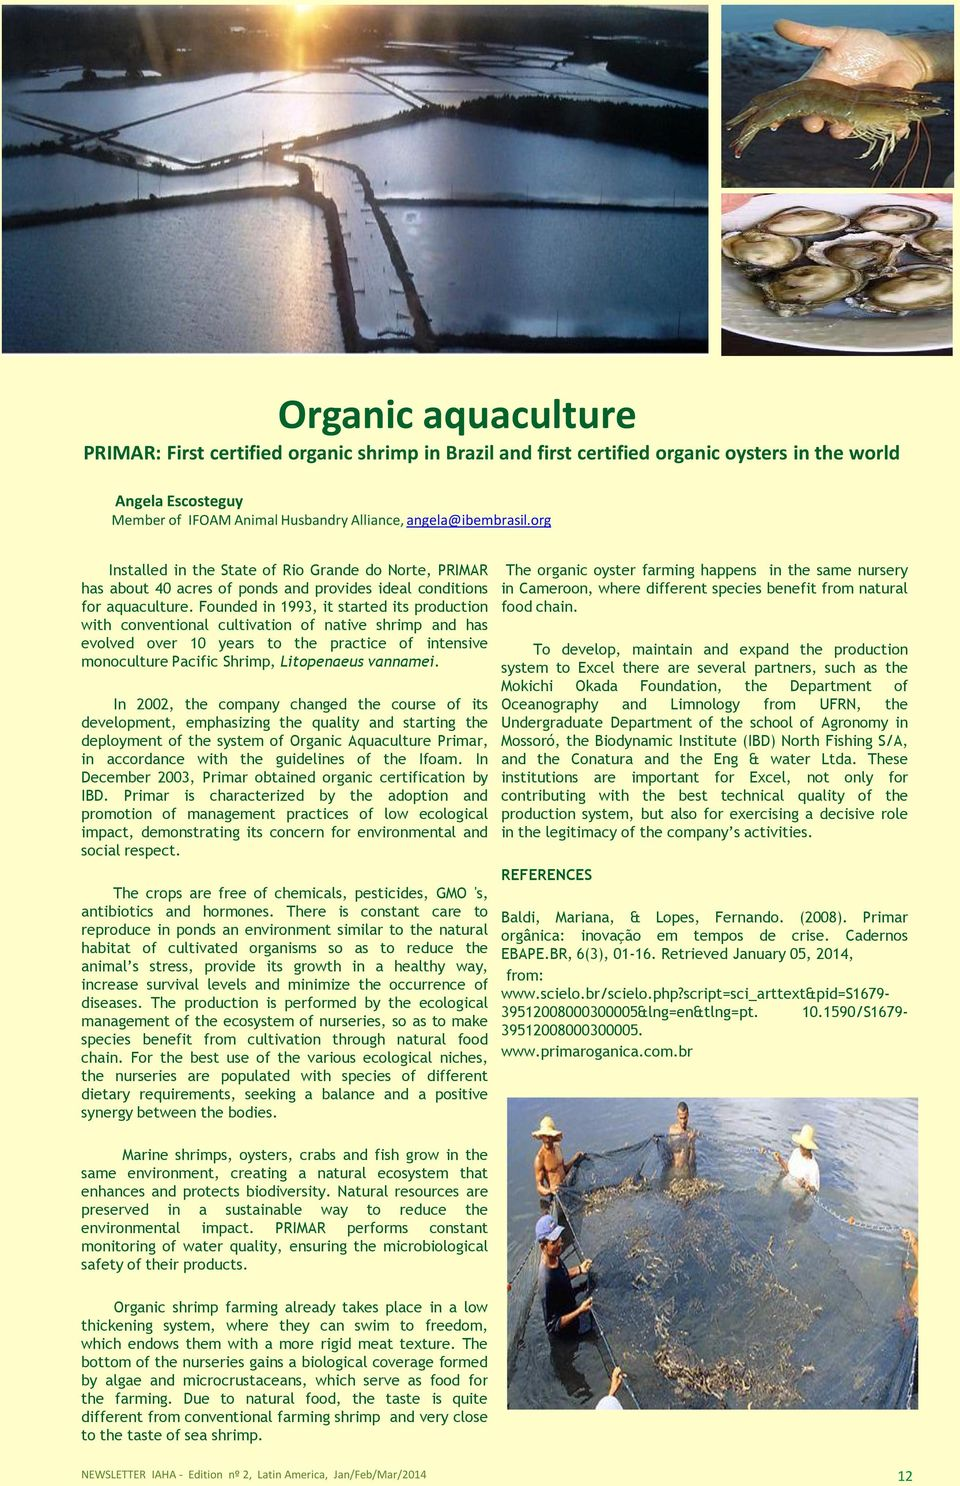 Founded in 1993, it started its production with conventional cultivation of native shrimp and has evolved over 10 years to the practice of intensive monoculture Pacific Shrimp, Litopenaeus vannamei.